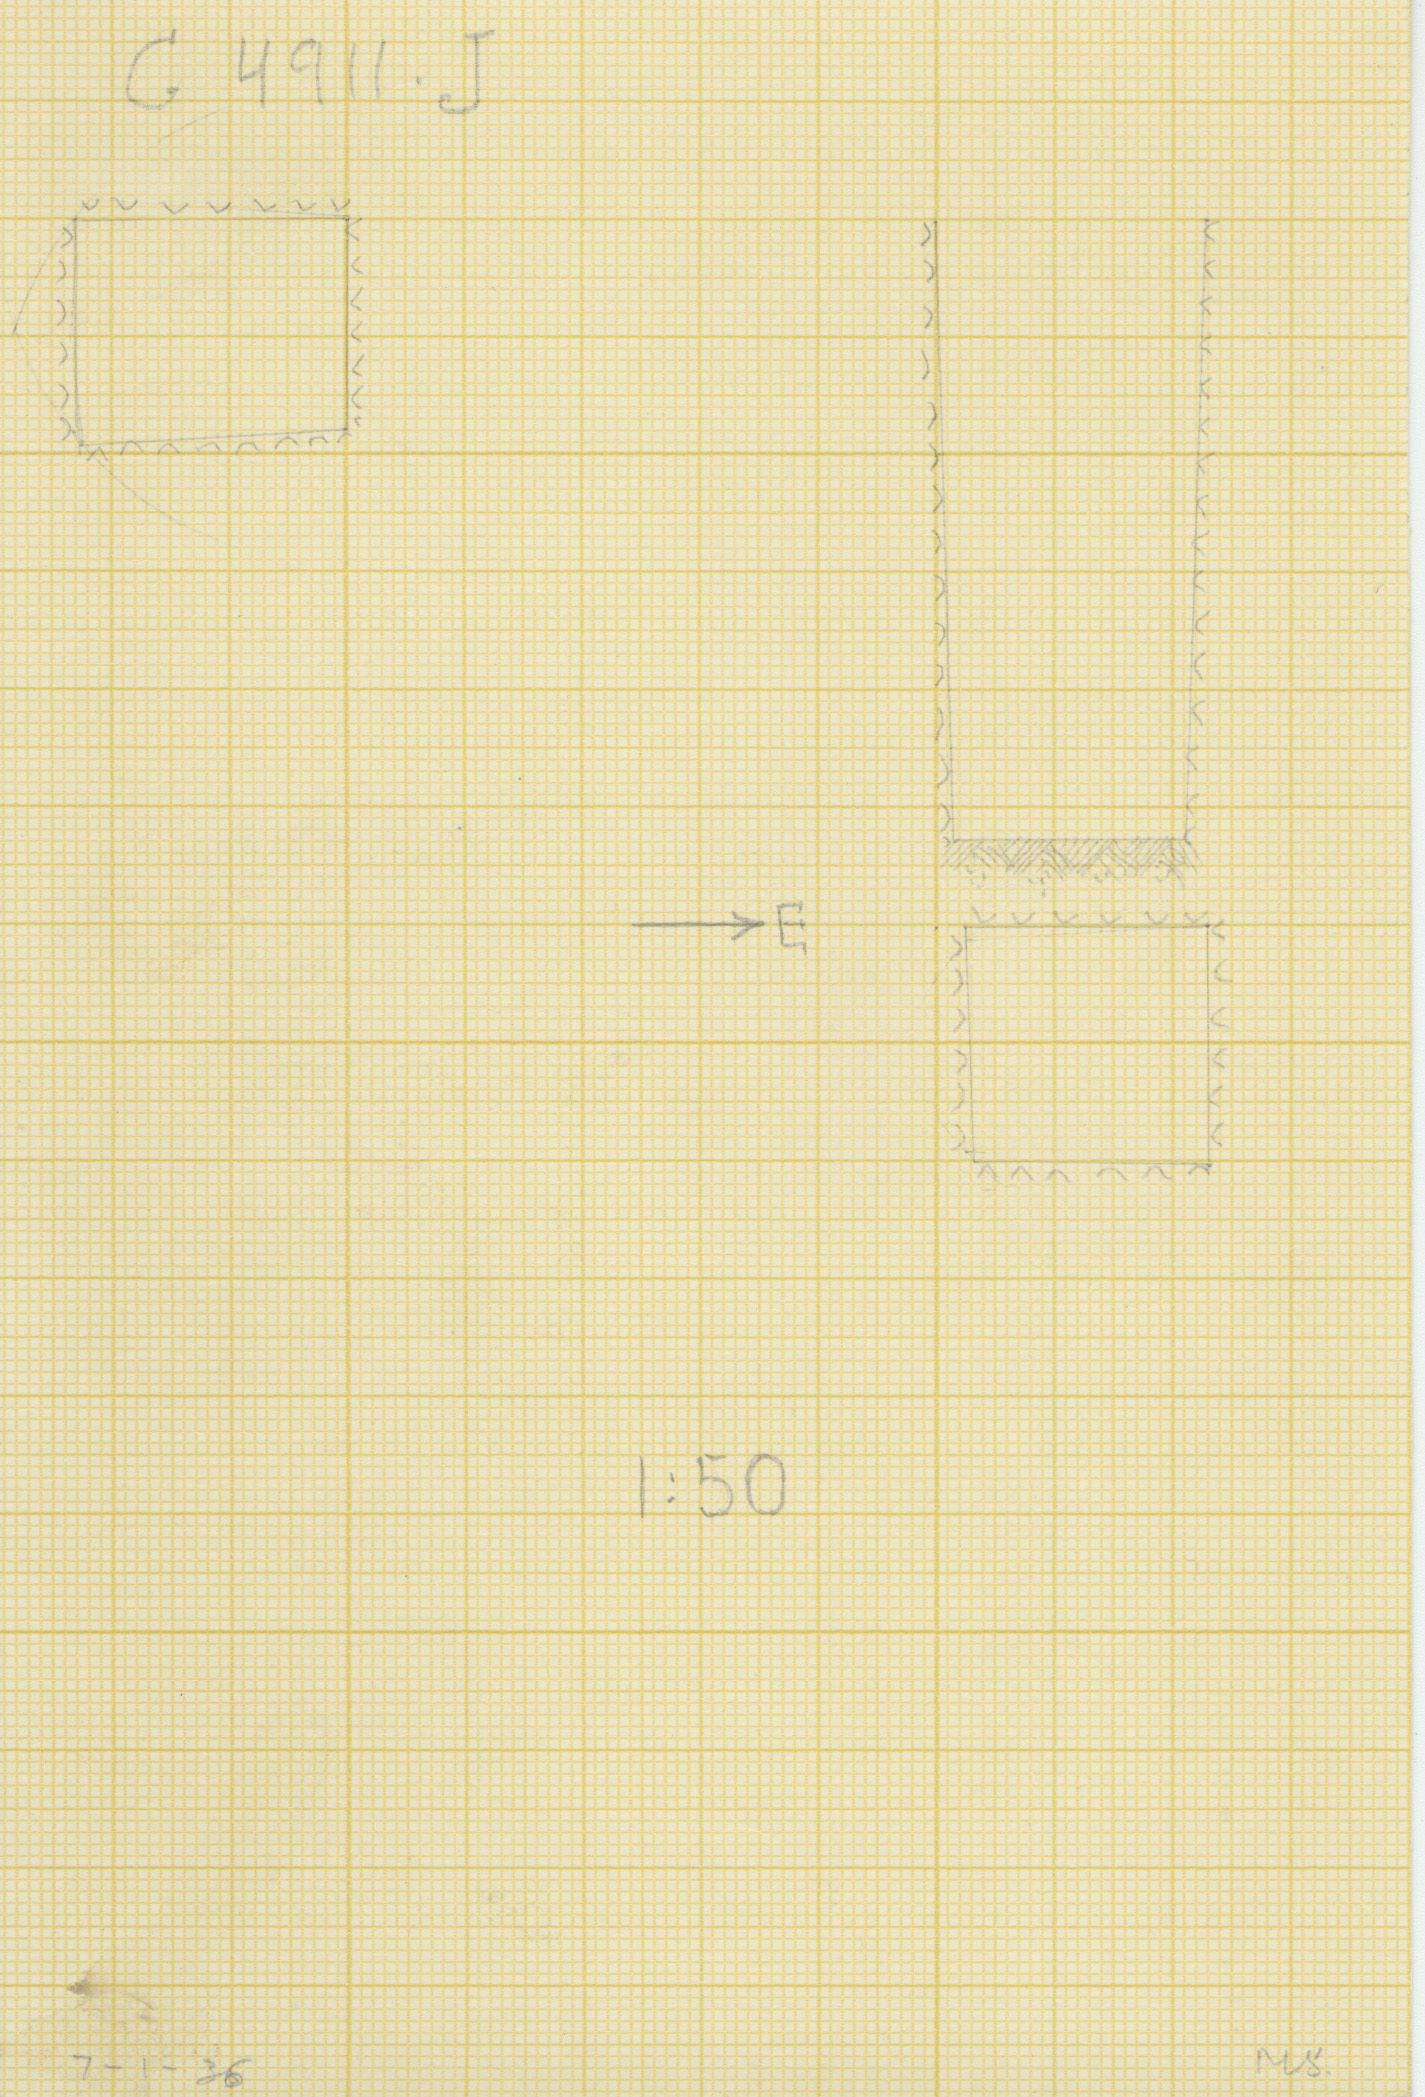 Maps and plans: G 4911, Shaft J